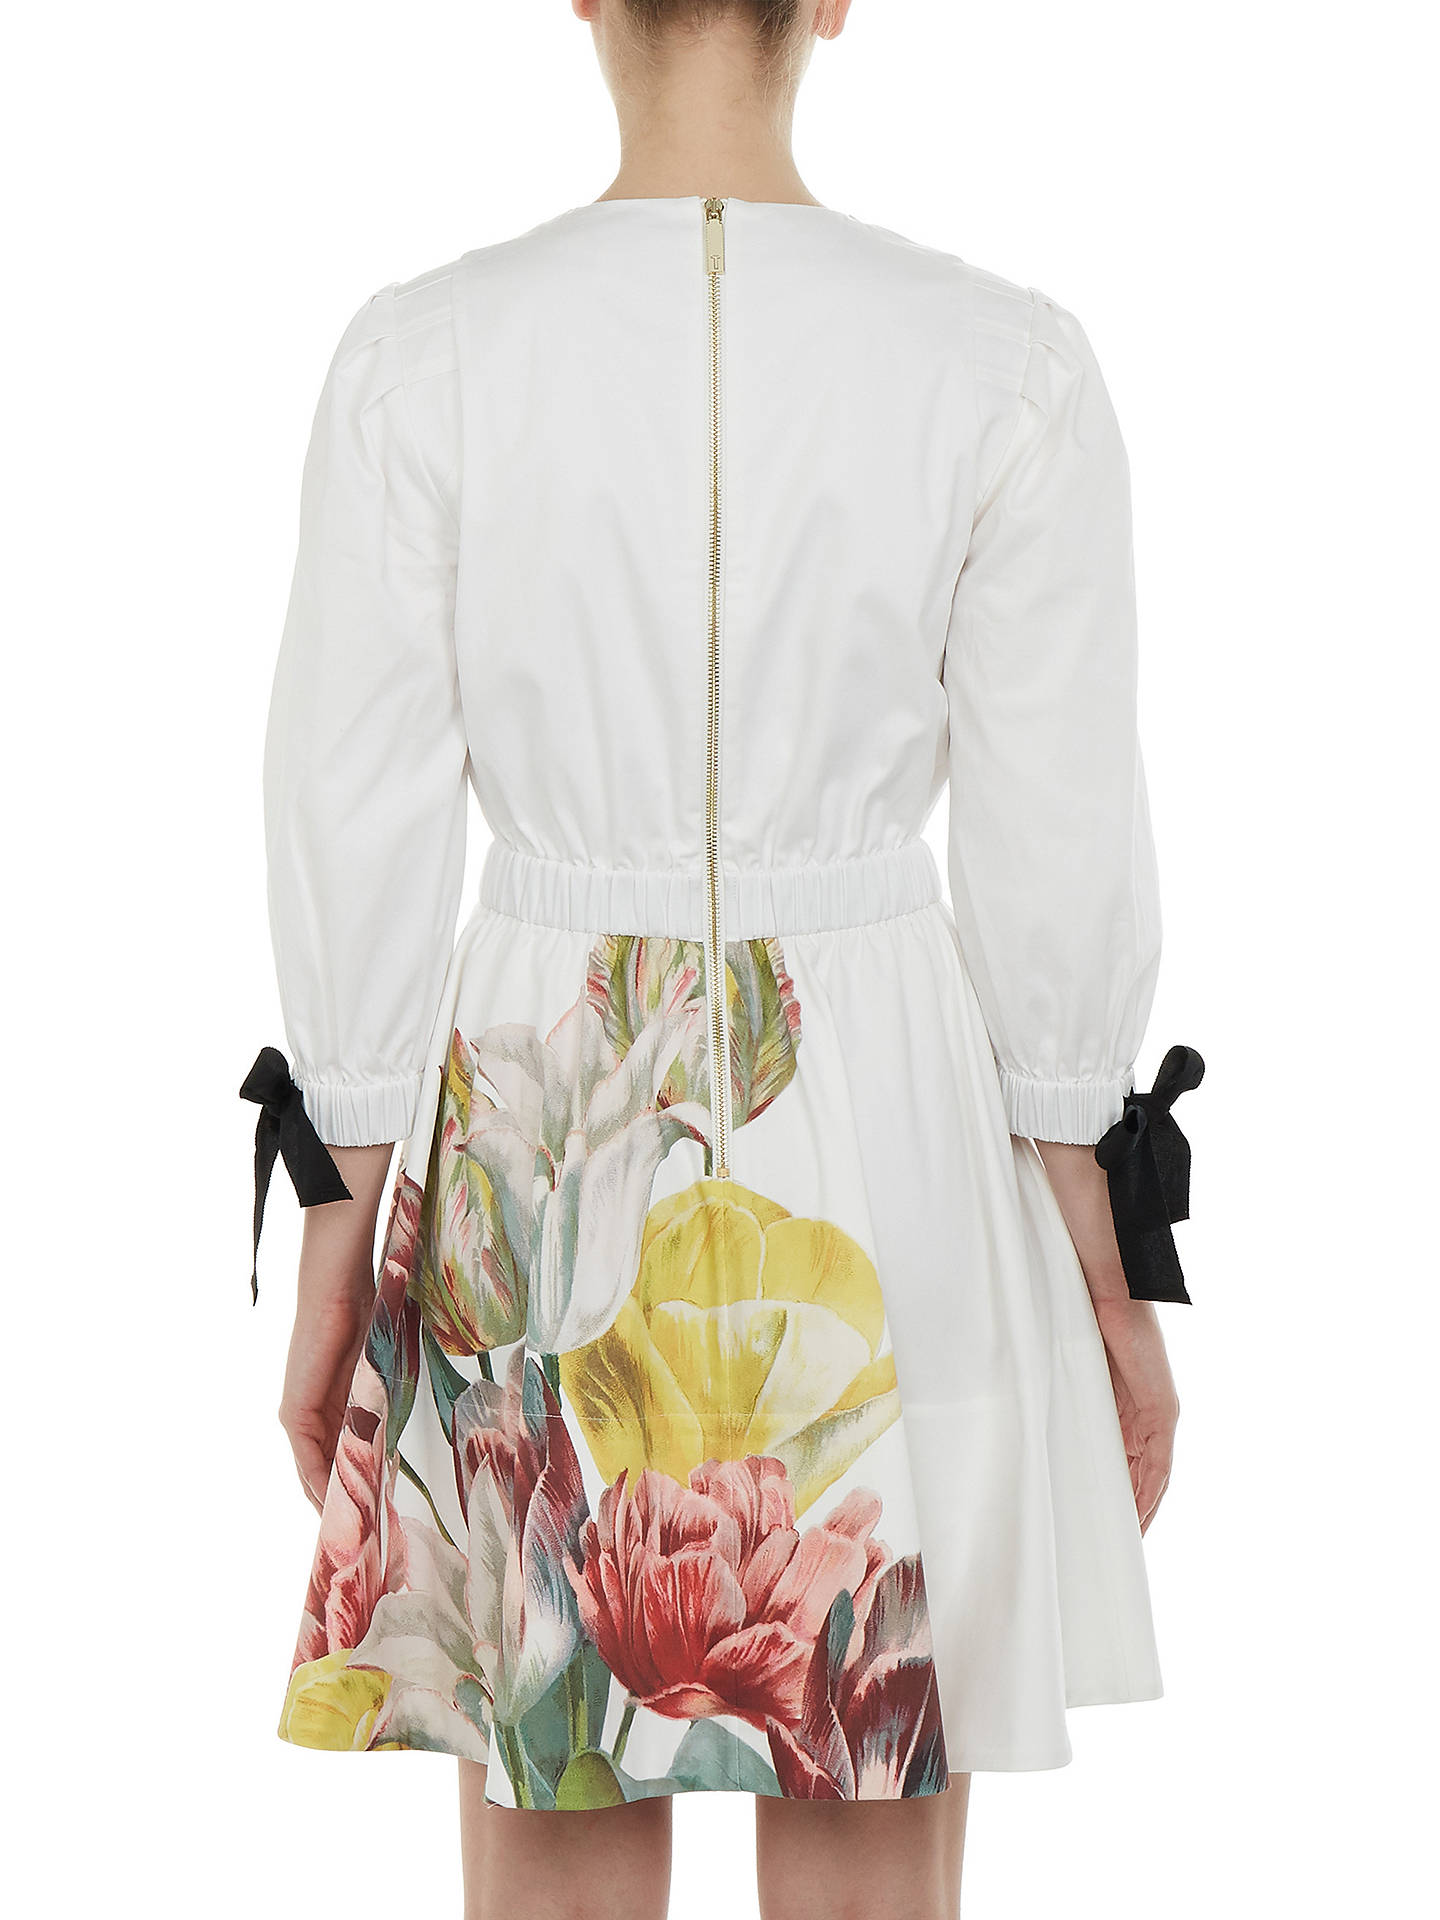 BuyTed Baker Tuleela Tranquility Print Dress, White, 0 Online at johnlewis.com